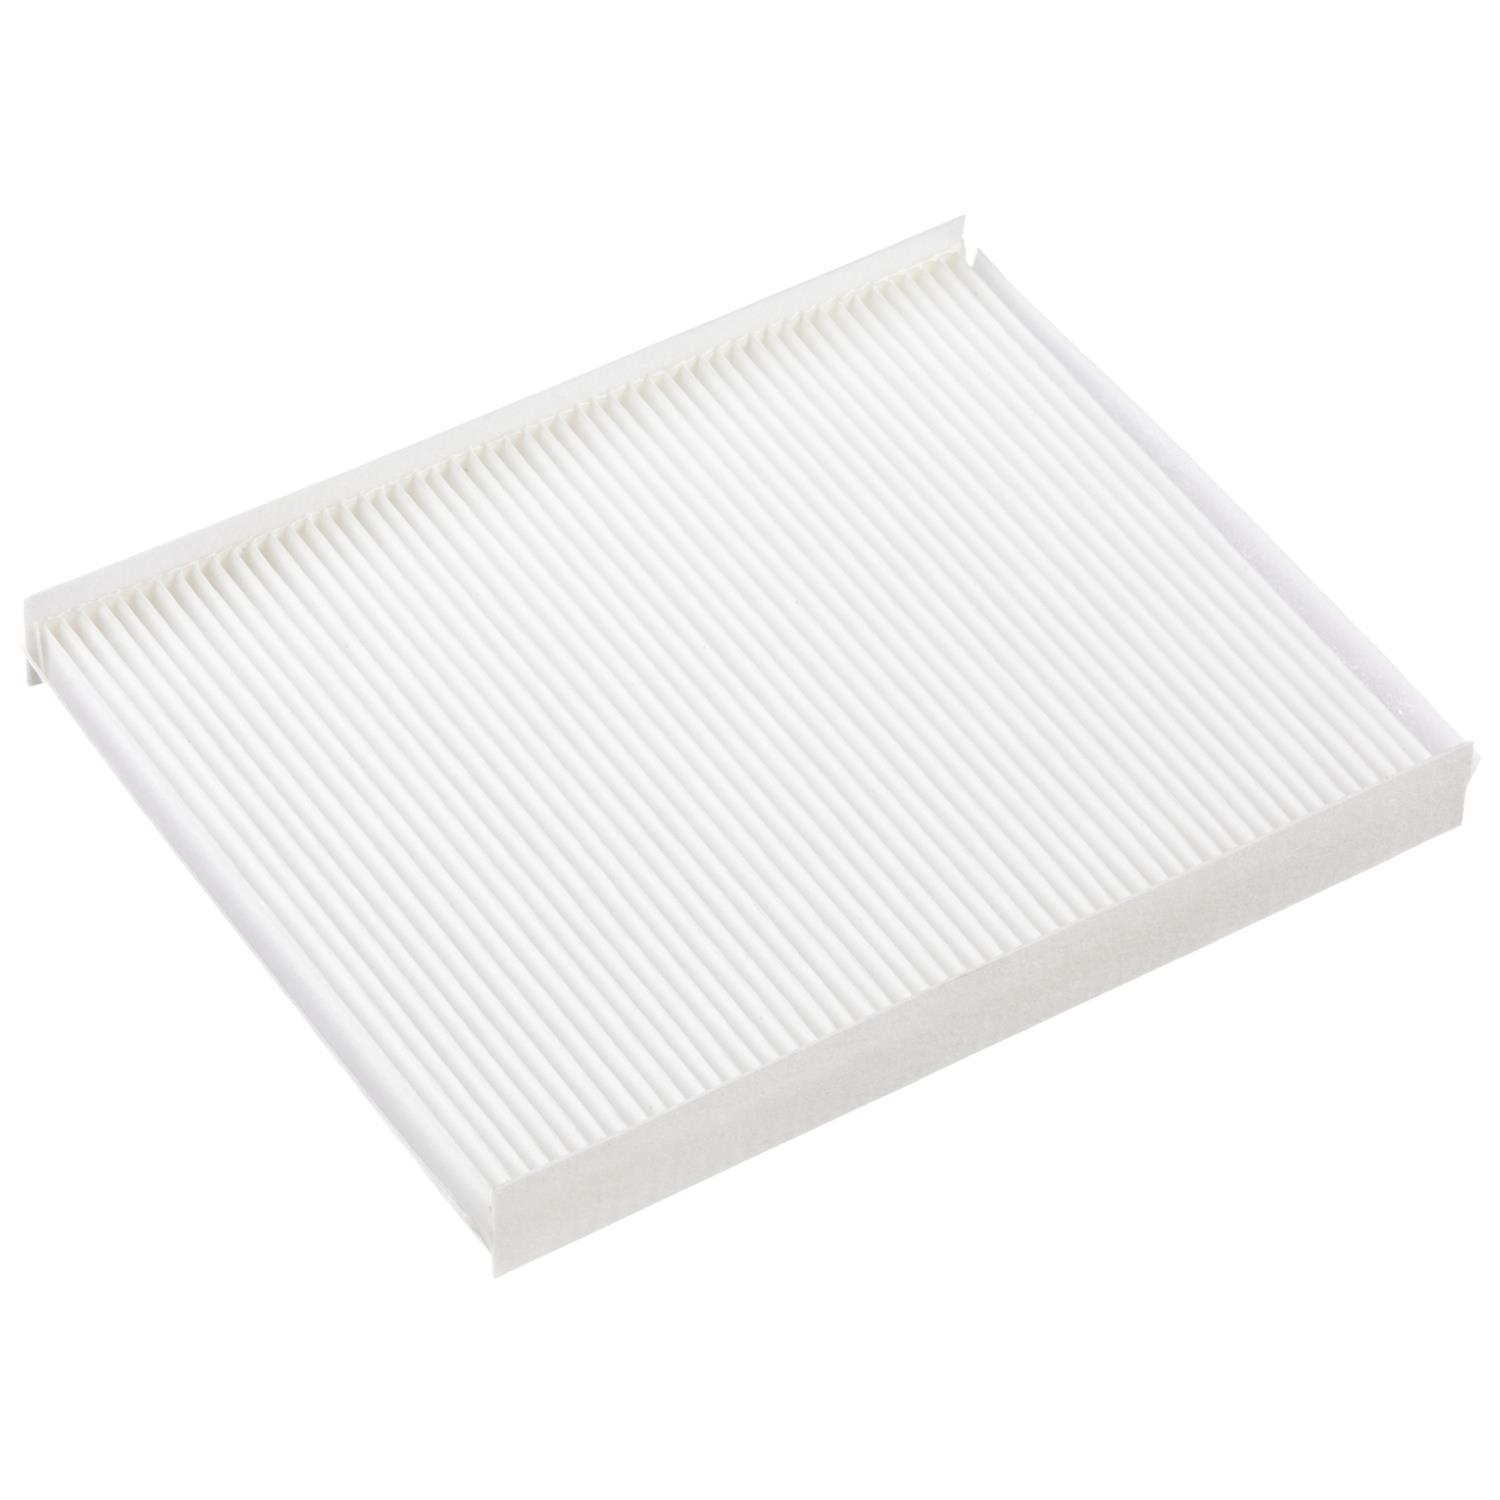 Atp Automotive Cf 249 Replacement Cabin Filter